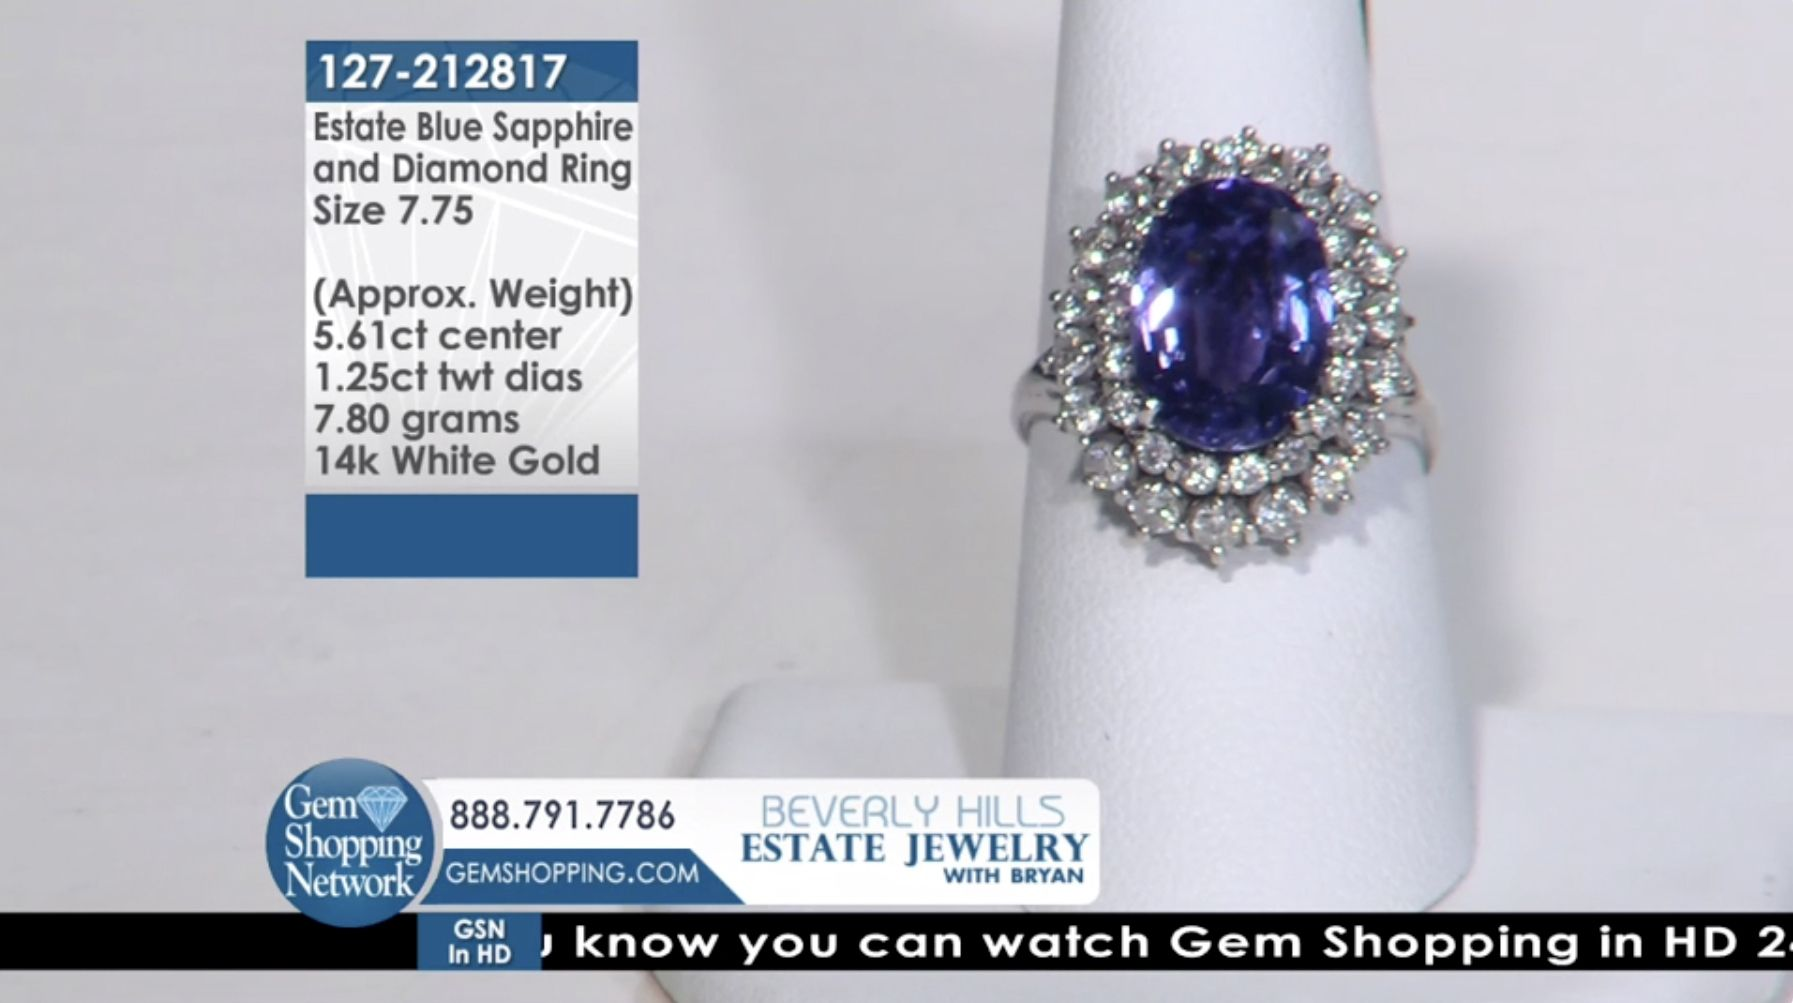 27++ Beverly hills estate jewelry gem shopping network ideas in 2021